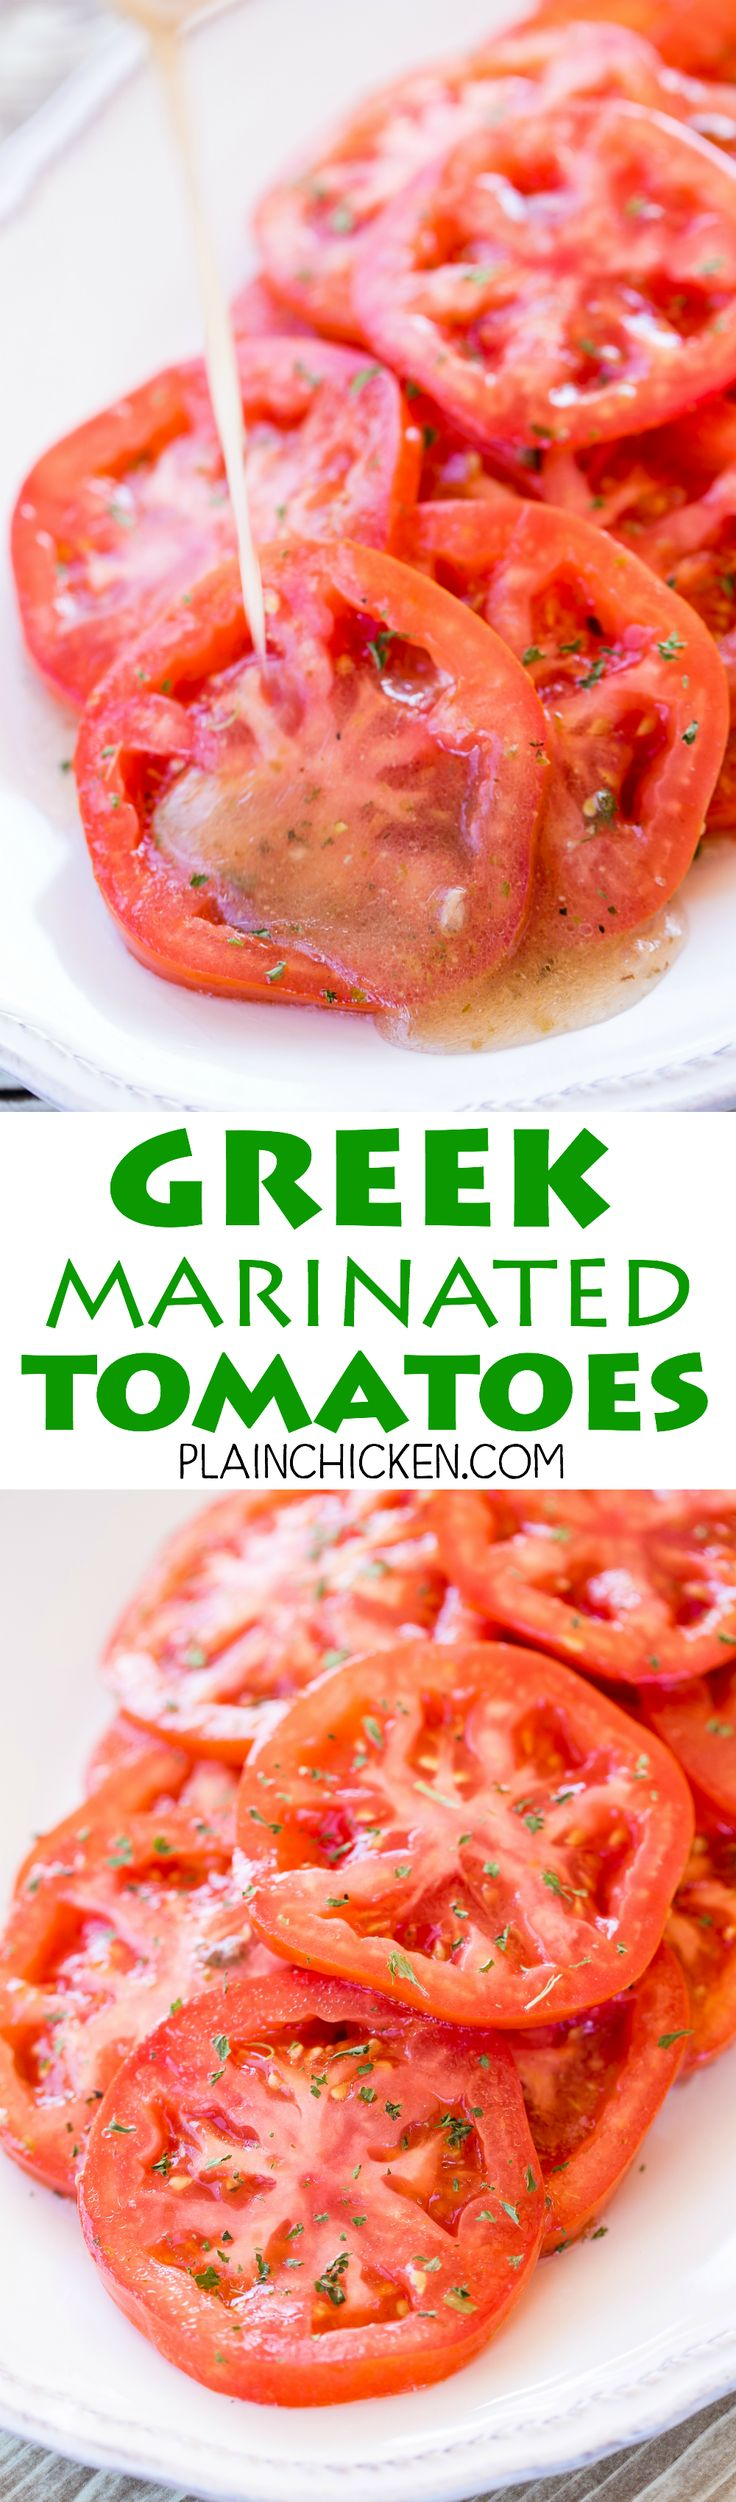 Greek Marinated Tomatoes - only 2 ingredients! Great way to use up all those yummy ripe tomatoes. Great as a side dish or on a sandwich! These make THE BEST BLT sandwich EVER! Whip up a batch today! Such an easy side dish recipe.